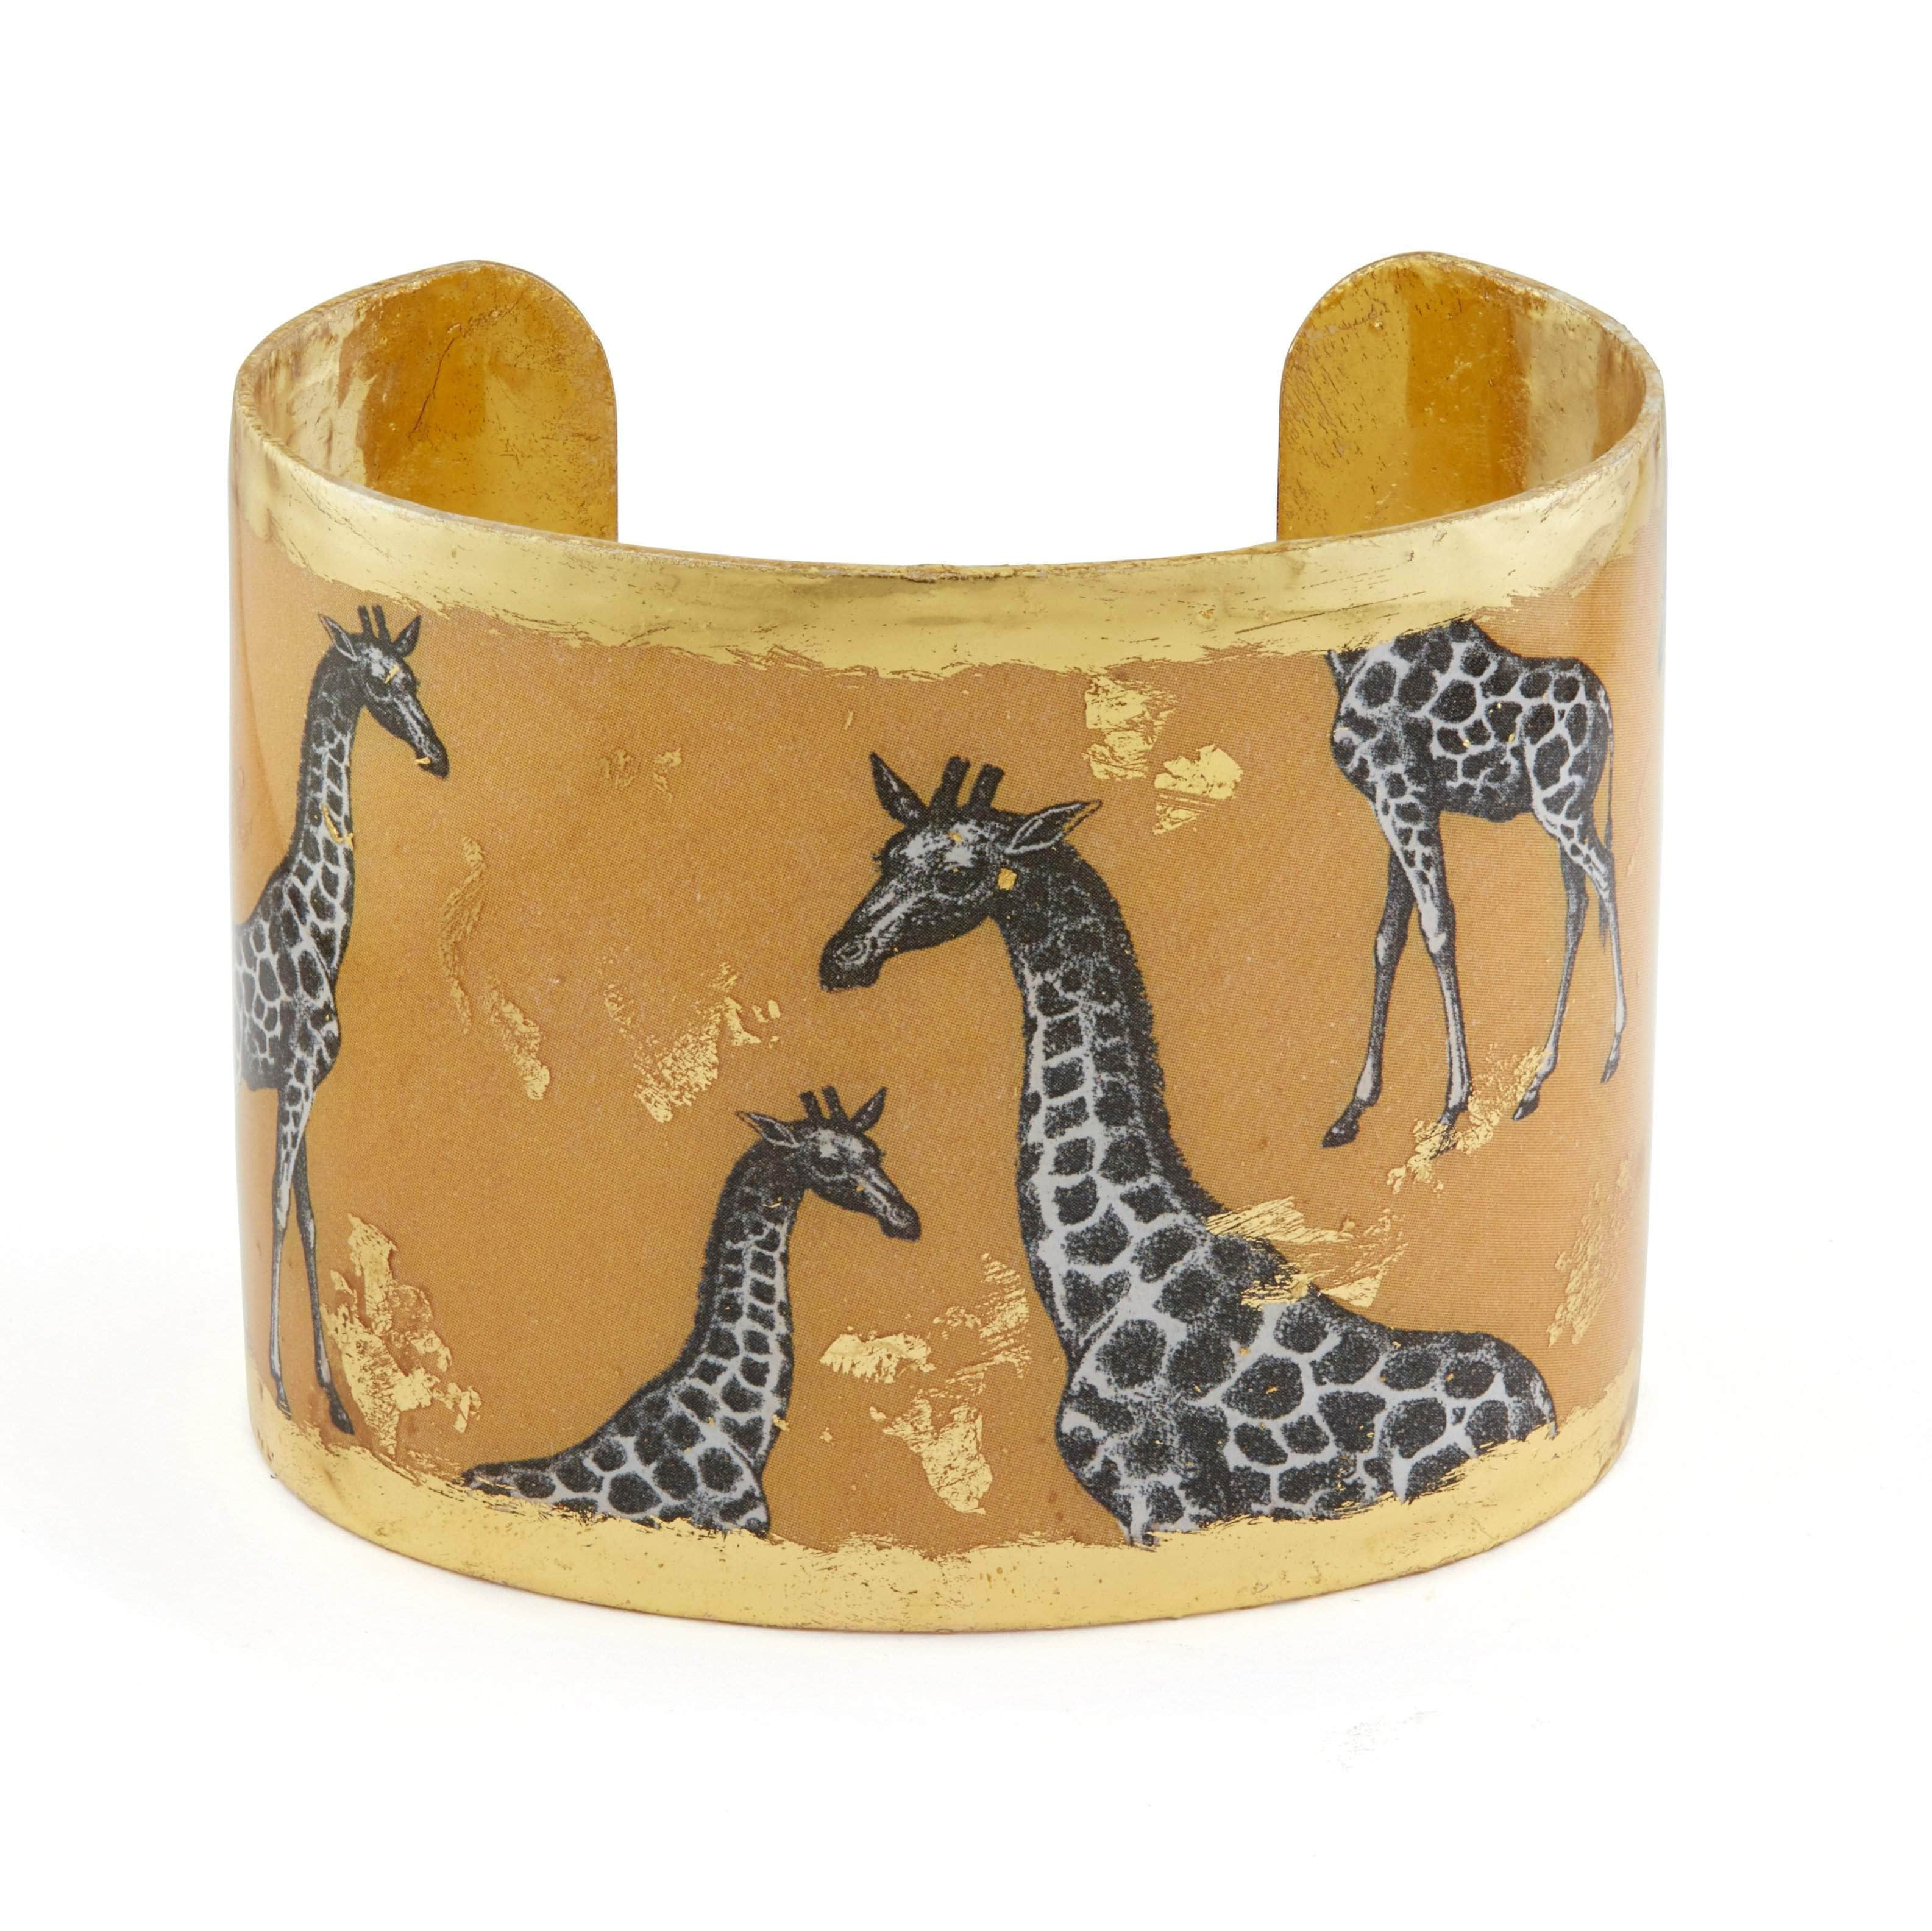 "Giraffe Dreams 2"" Gold Cuff - HS152-Evocateur-Renee Taylor Gallery"